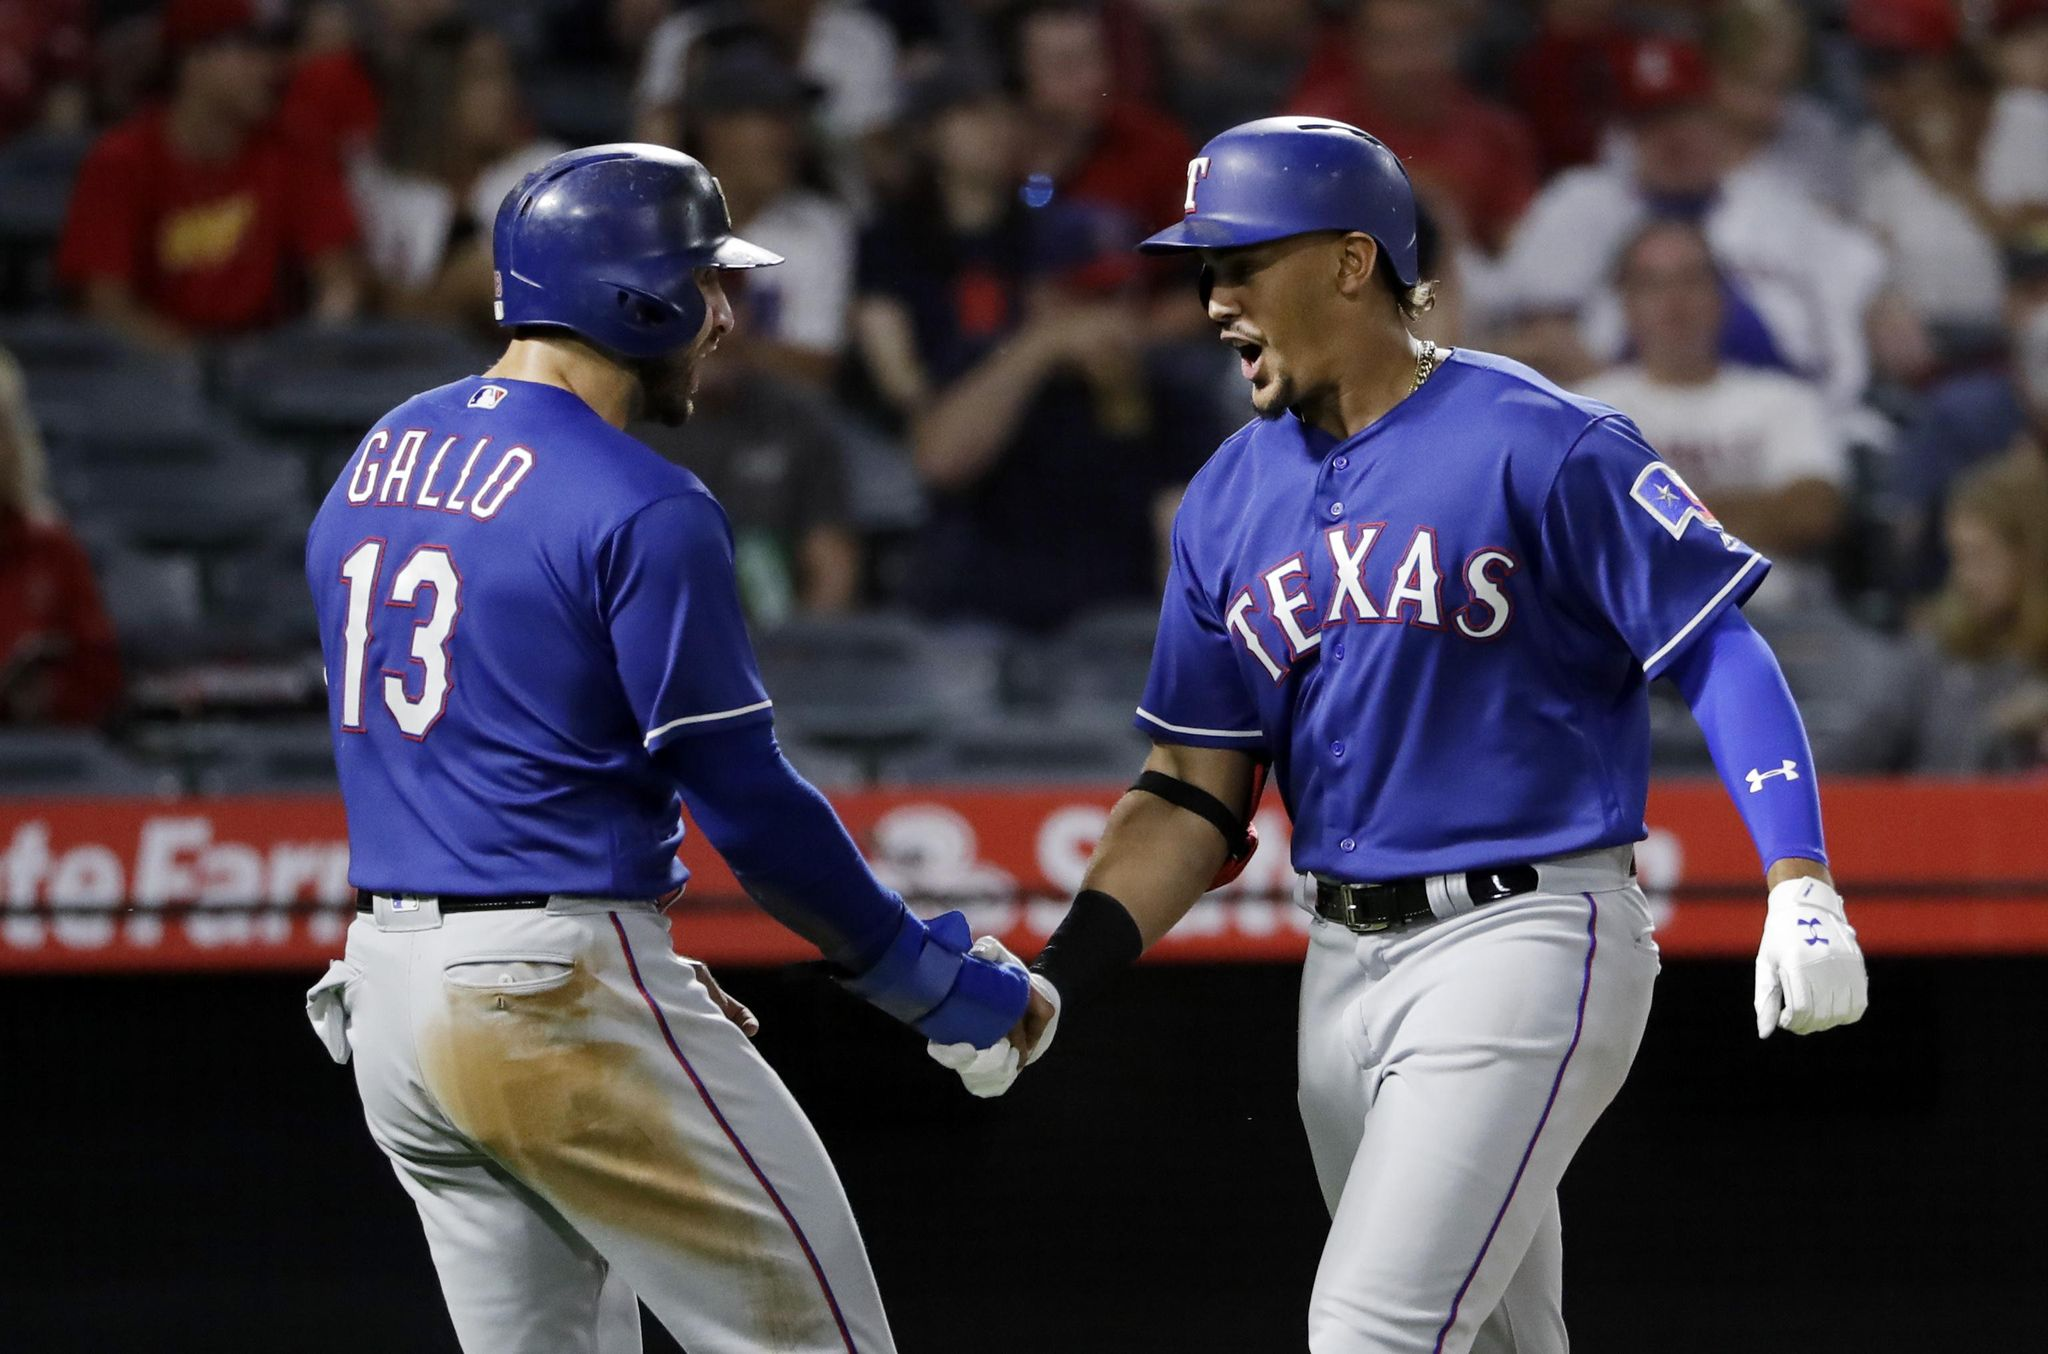 Rangers_angels_baseball_93382_s2048x1354